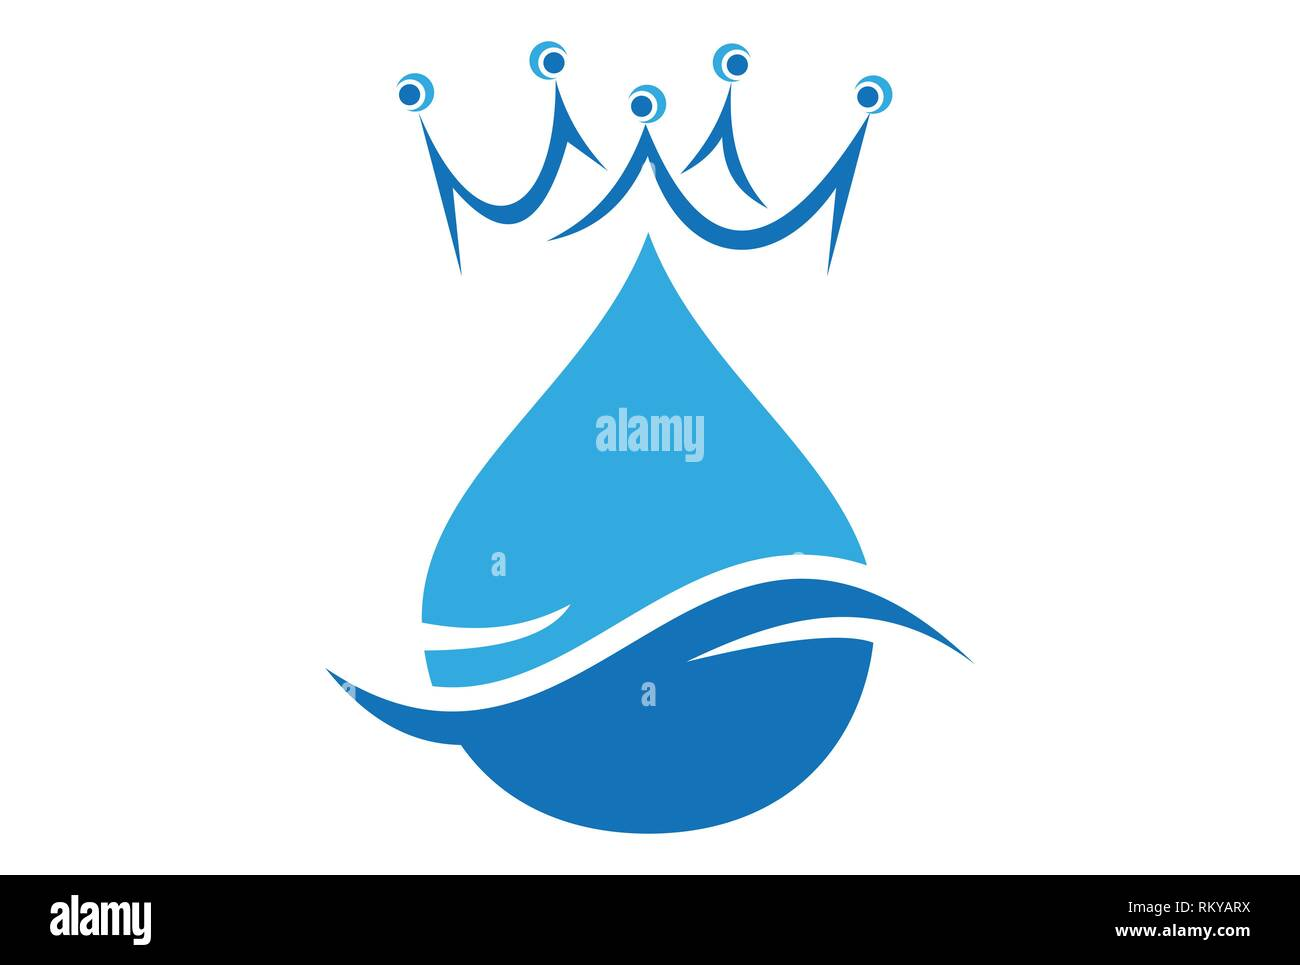 king water abstract concept logo icon vector concept flat design - Stock Image